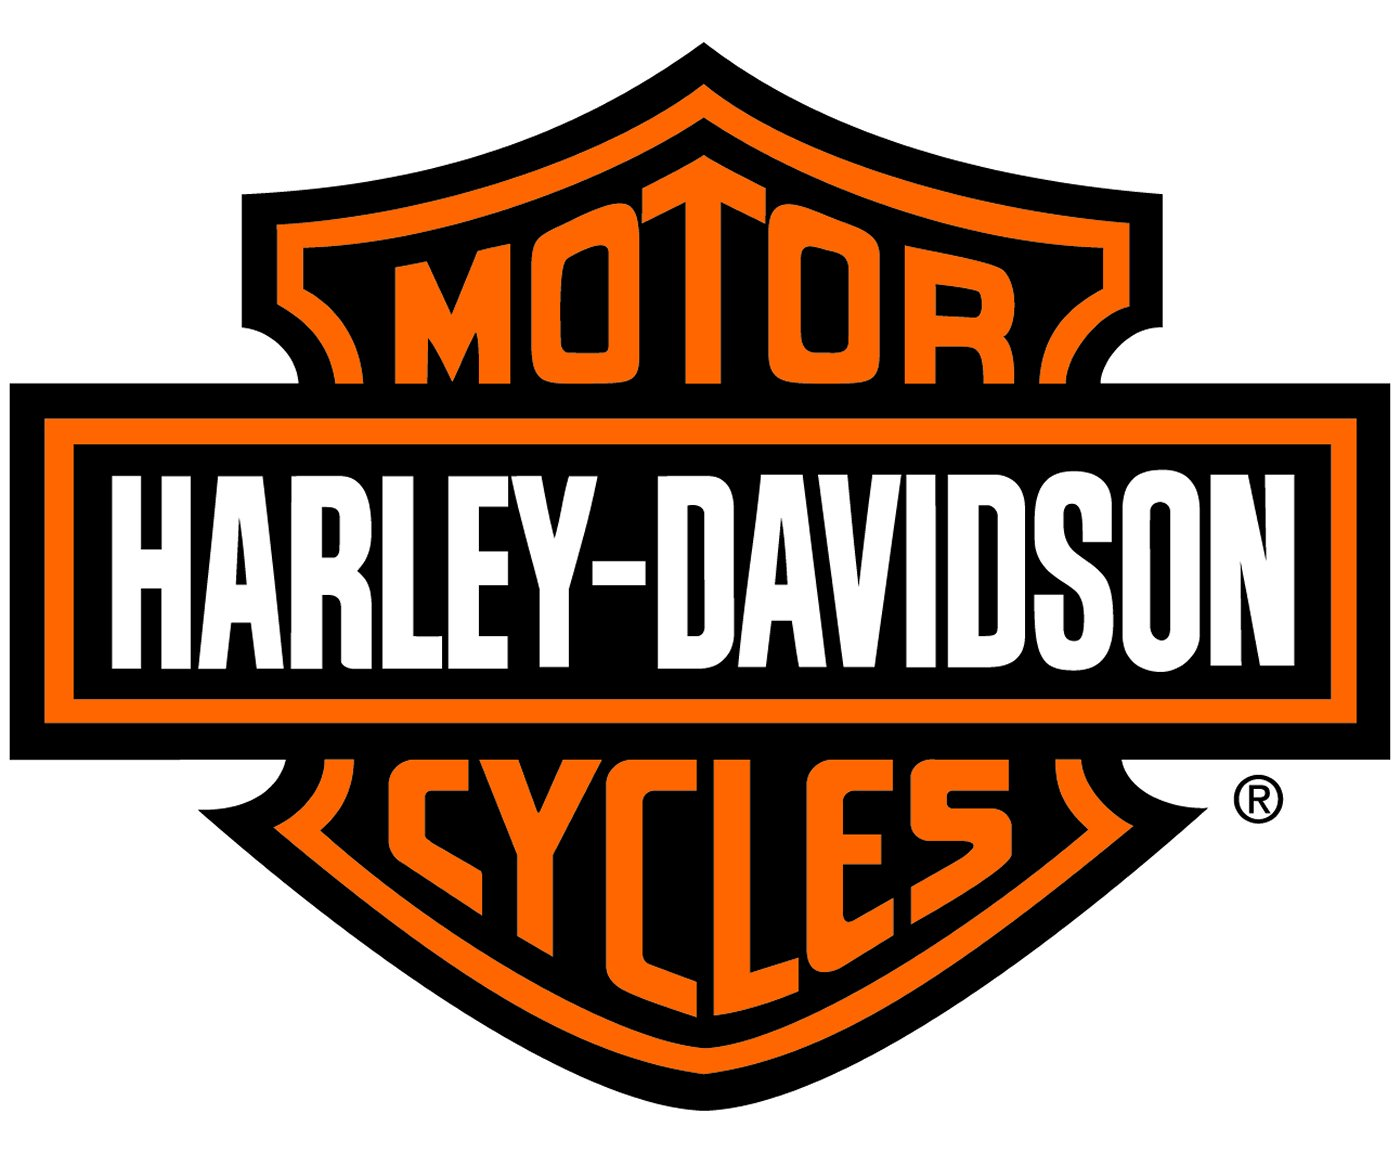 Special Financing and Deals For Military With Harley Davidson Motorcycles